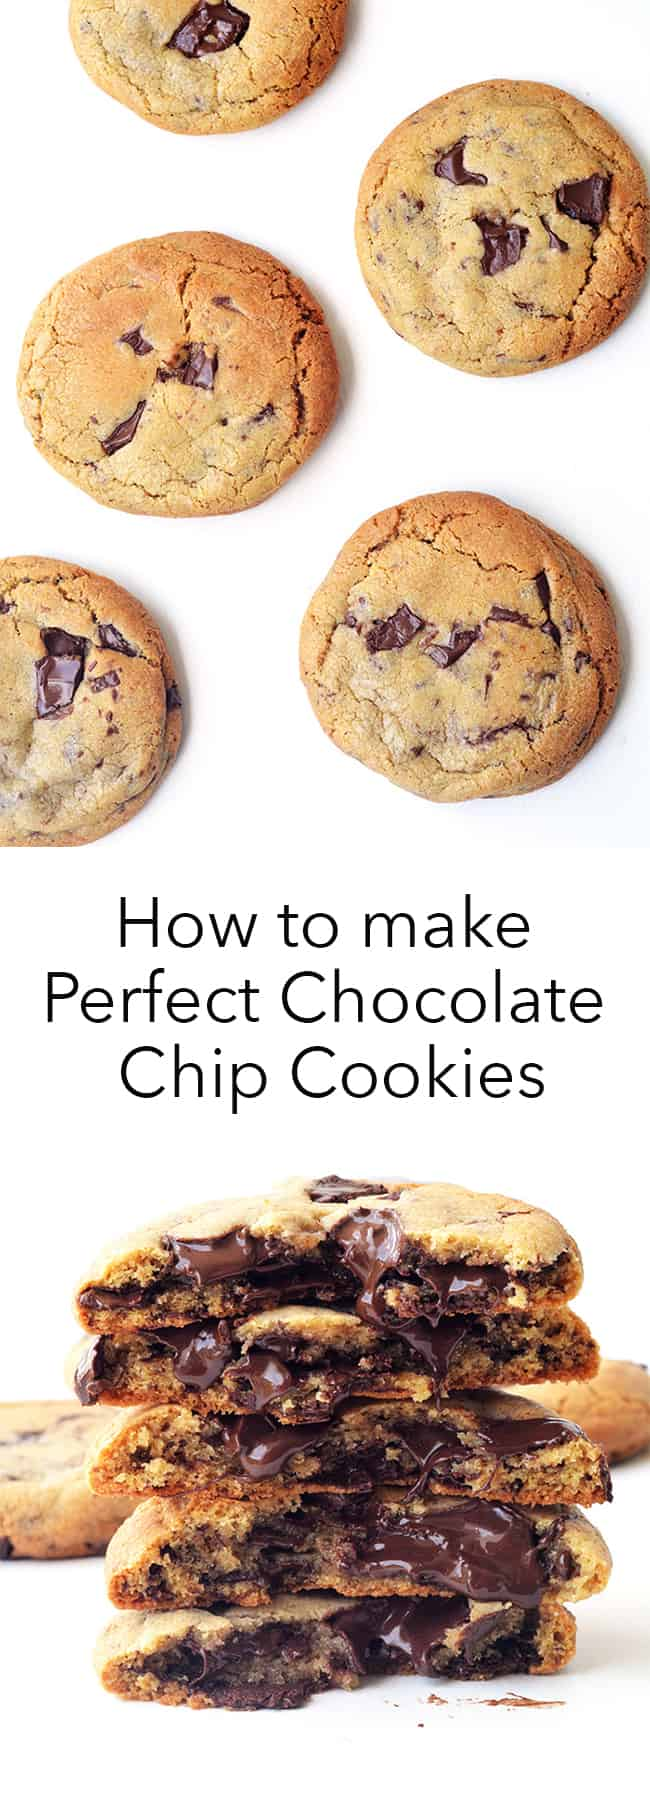 How To Make The Perfect Chocolate Chip Cookie - Sweetest Menu